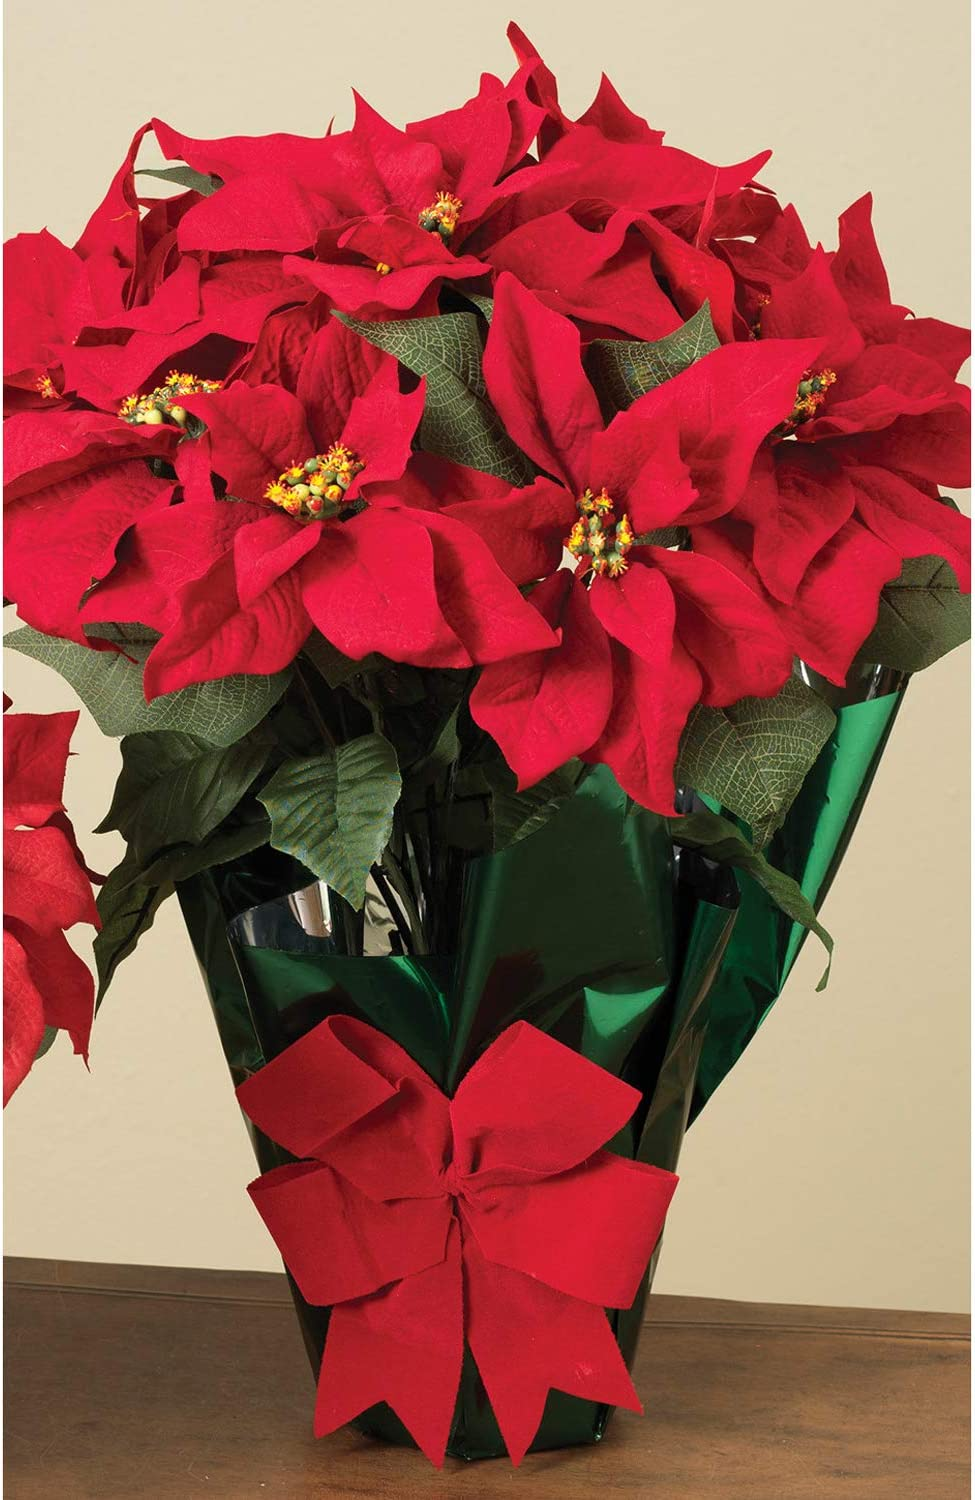 Amazon Com Ac 22 Potted Red Poinsettia Plant With 10 Flowers And Decorative Bow Home Kitchen